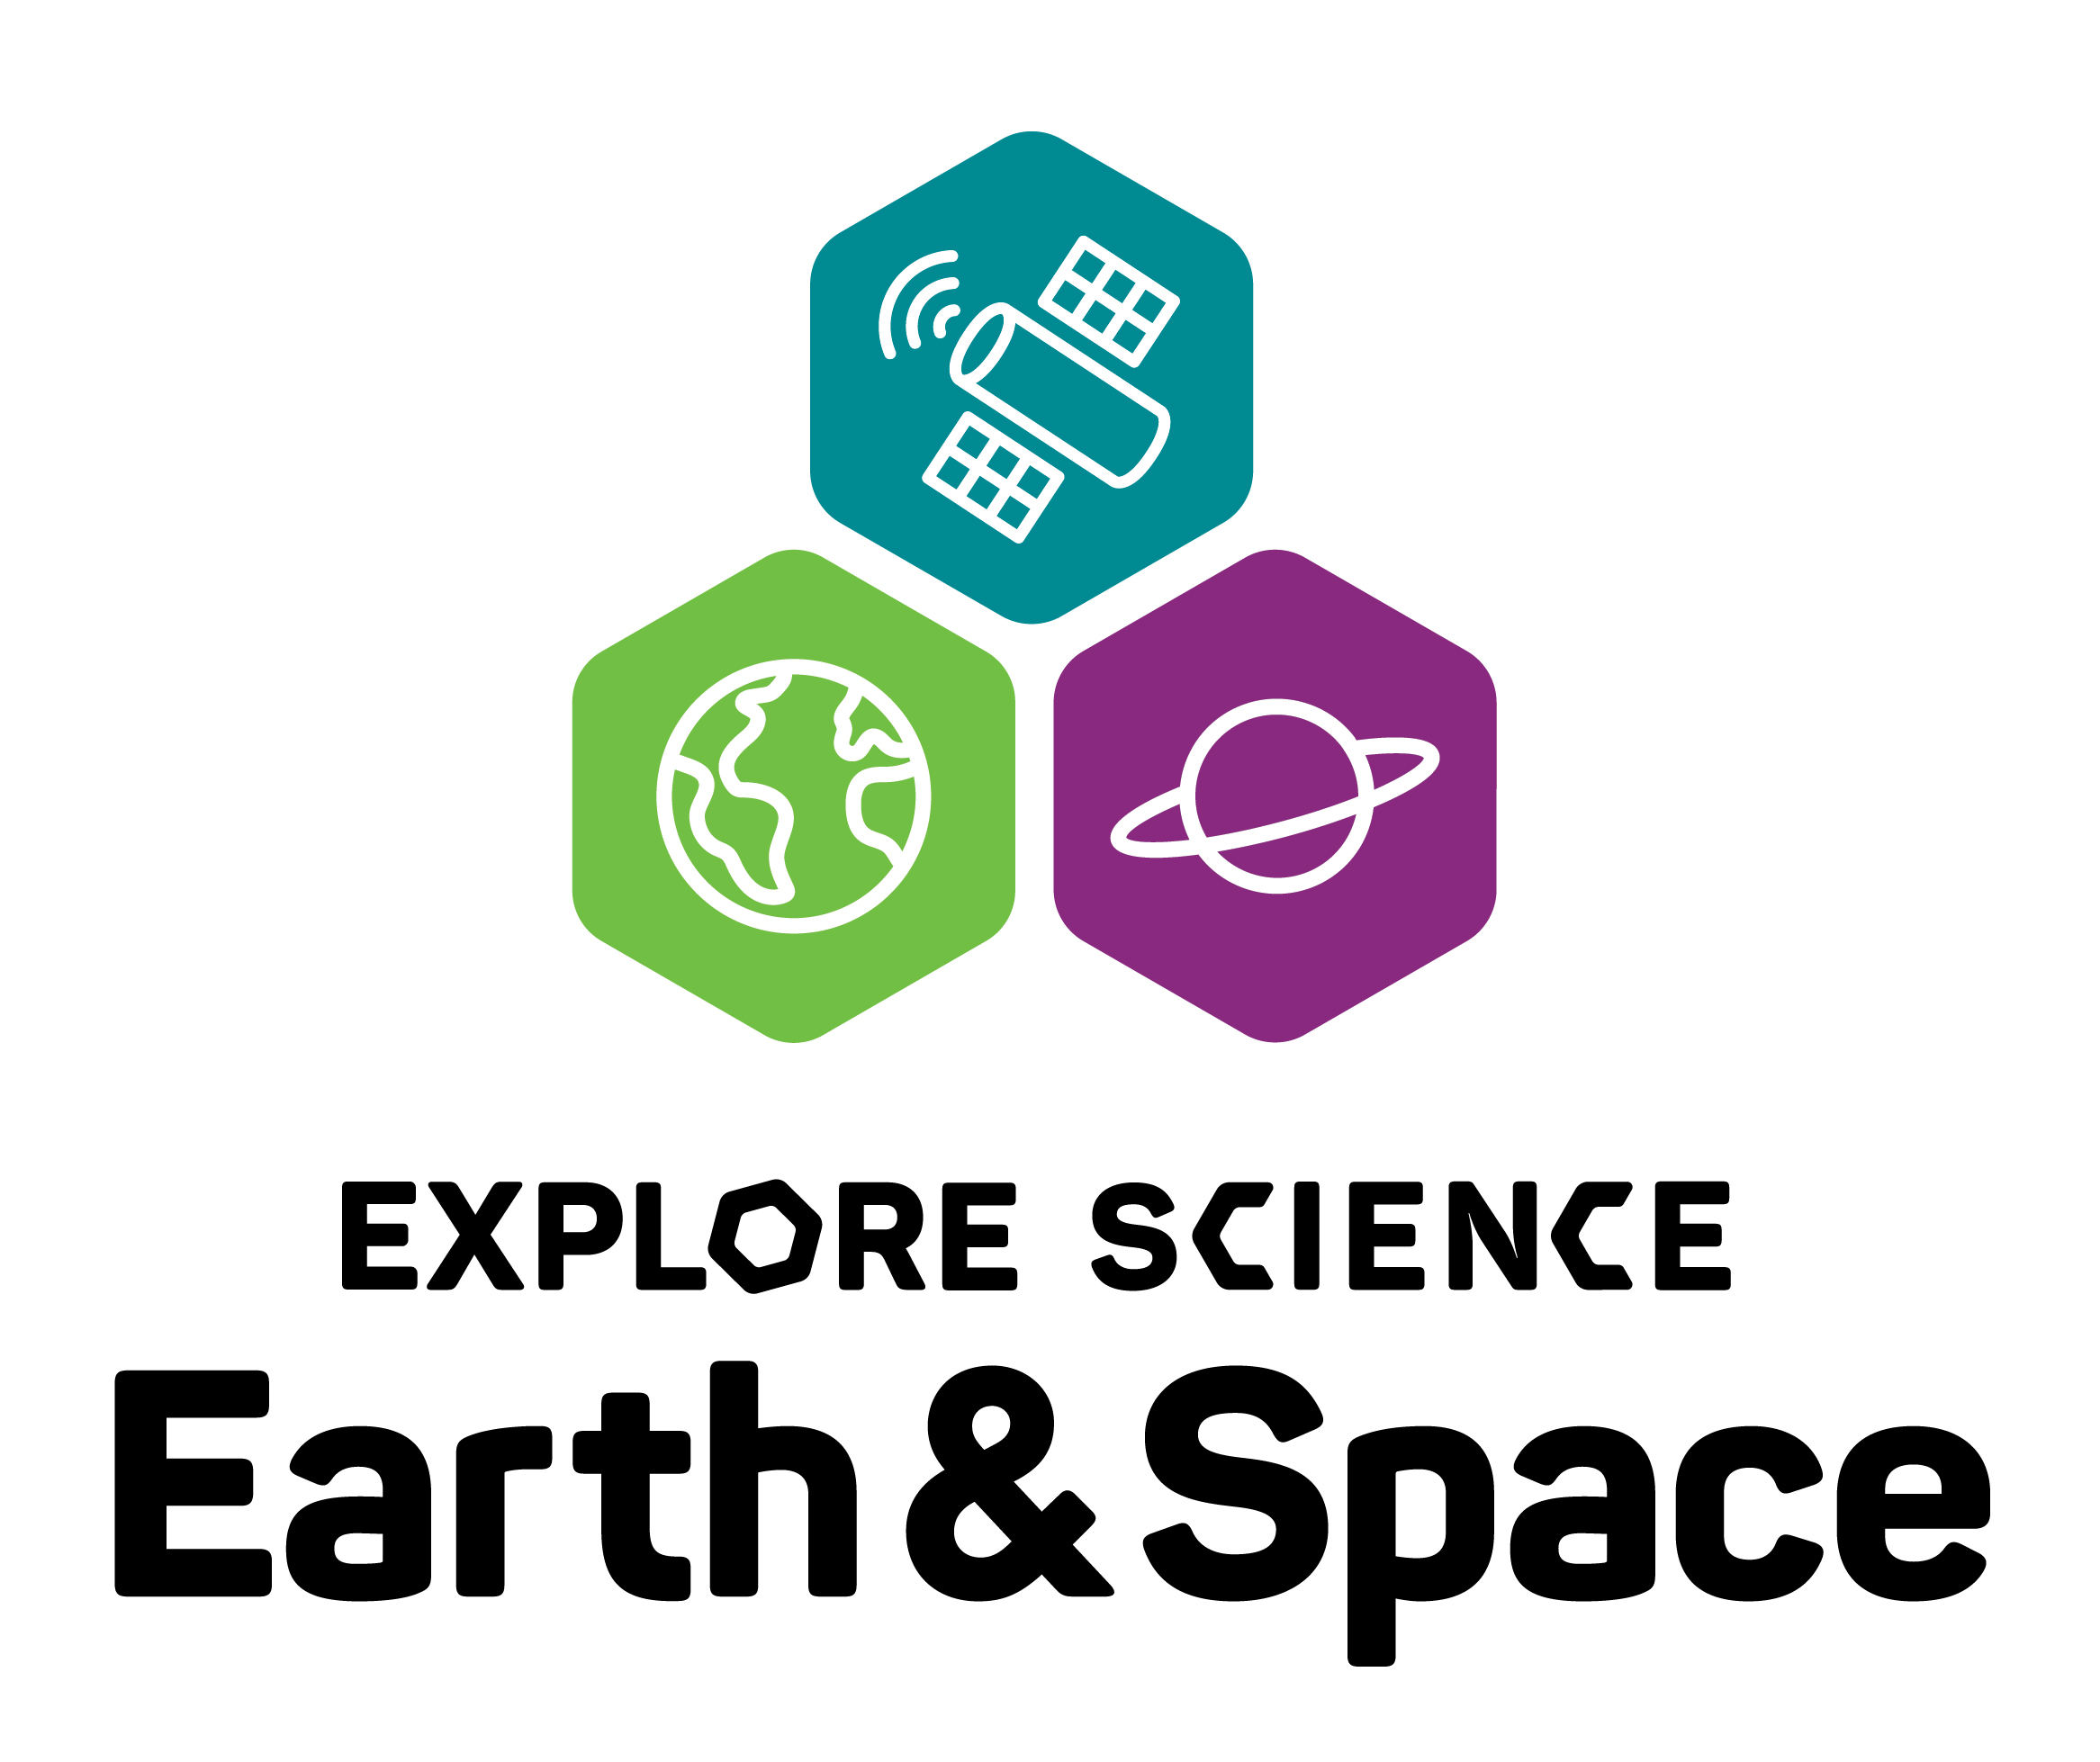 earth space science logo - photo #3